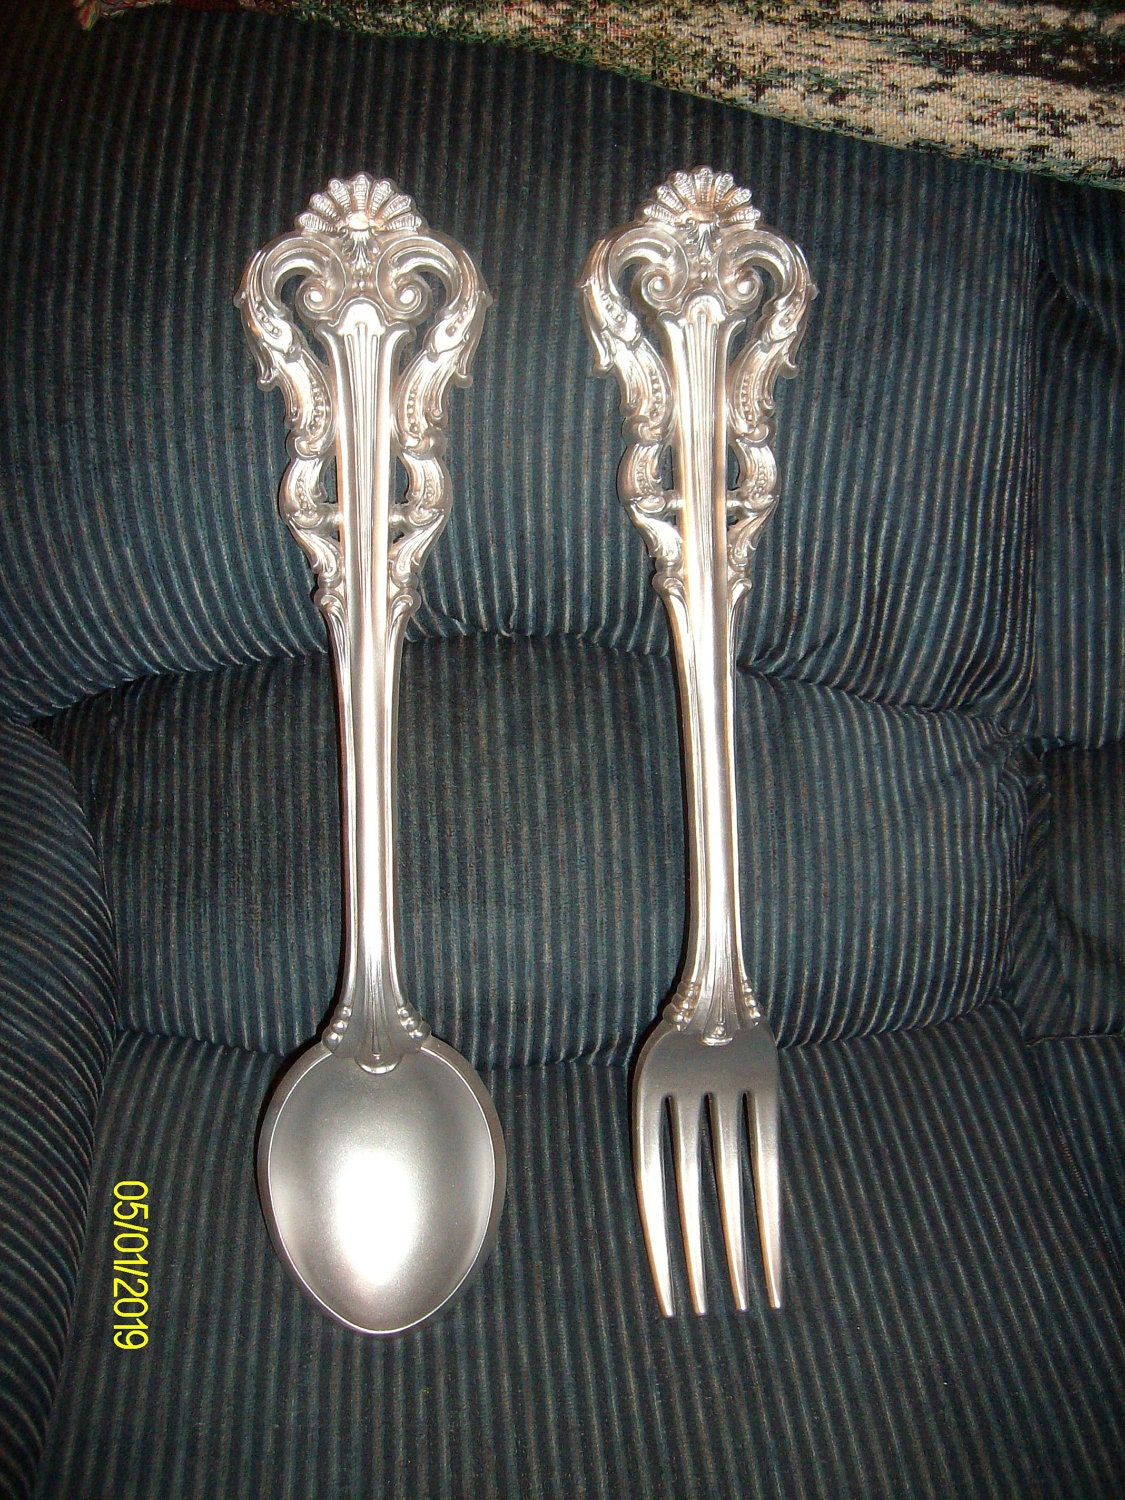 Fork Spoon Wall Decor Home and Garden.